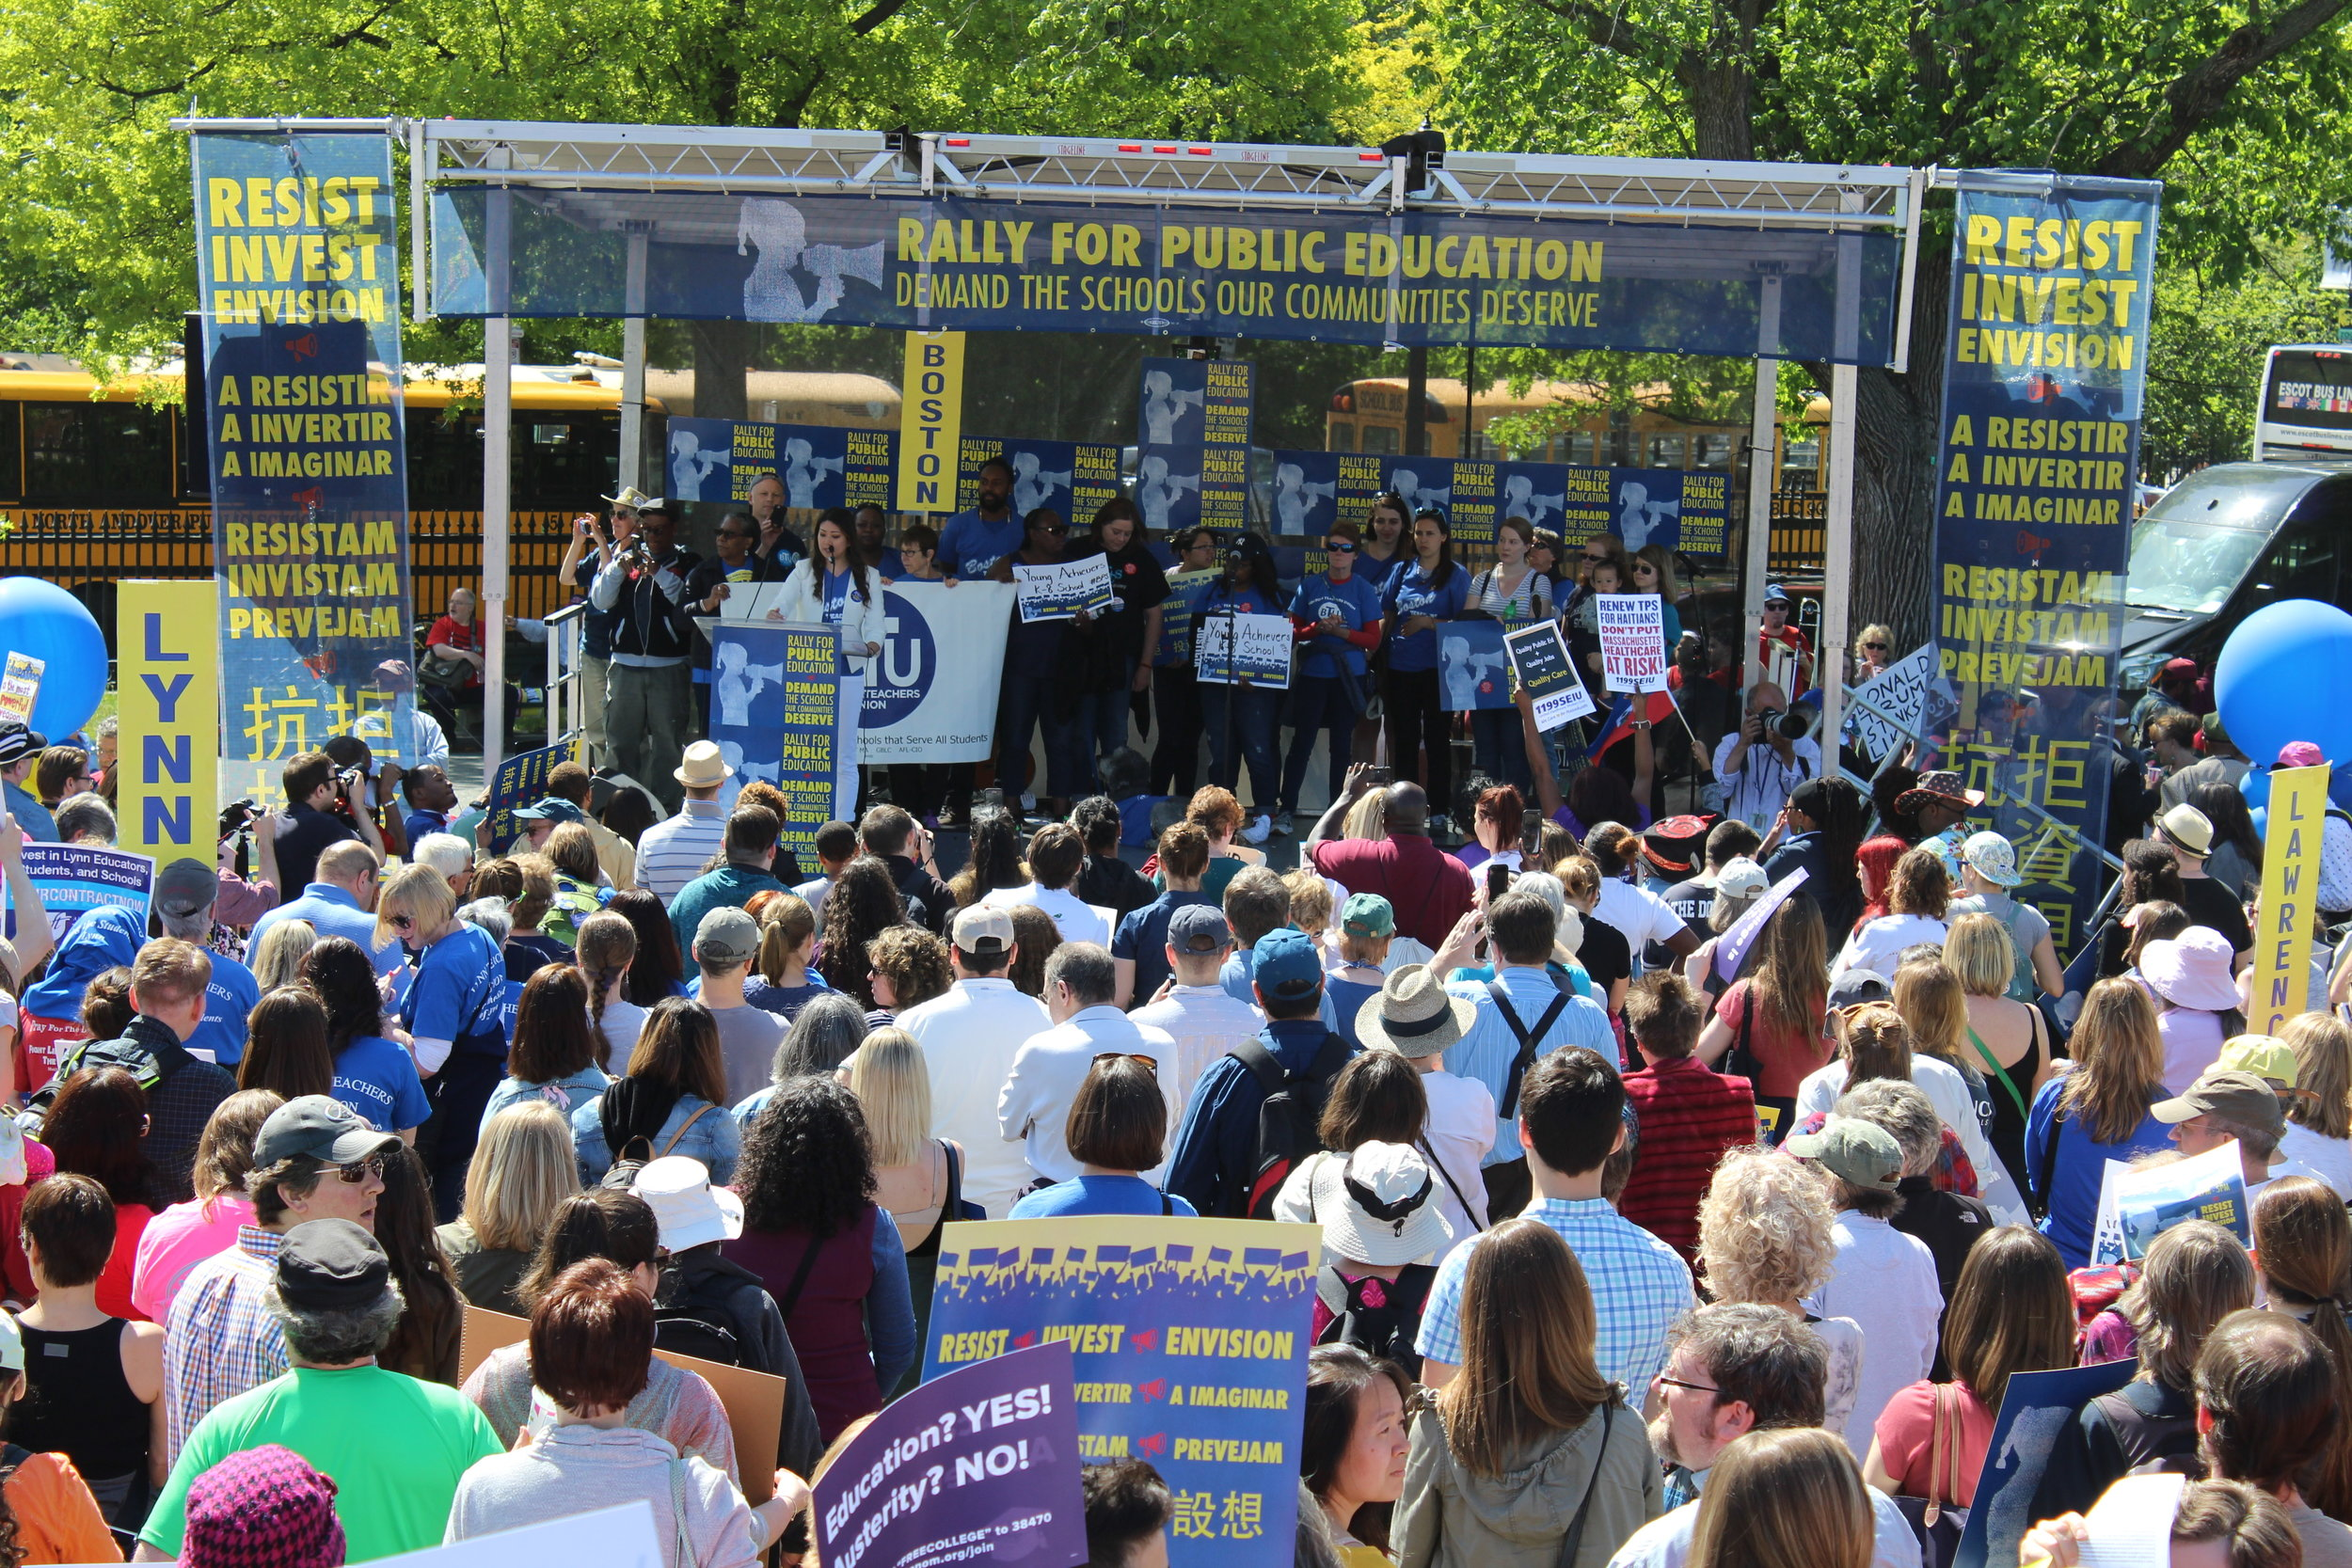 Thousands of public education supporters gathered for the Rally for Public Education in 2017.